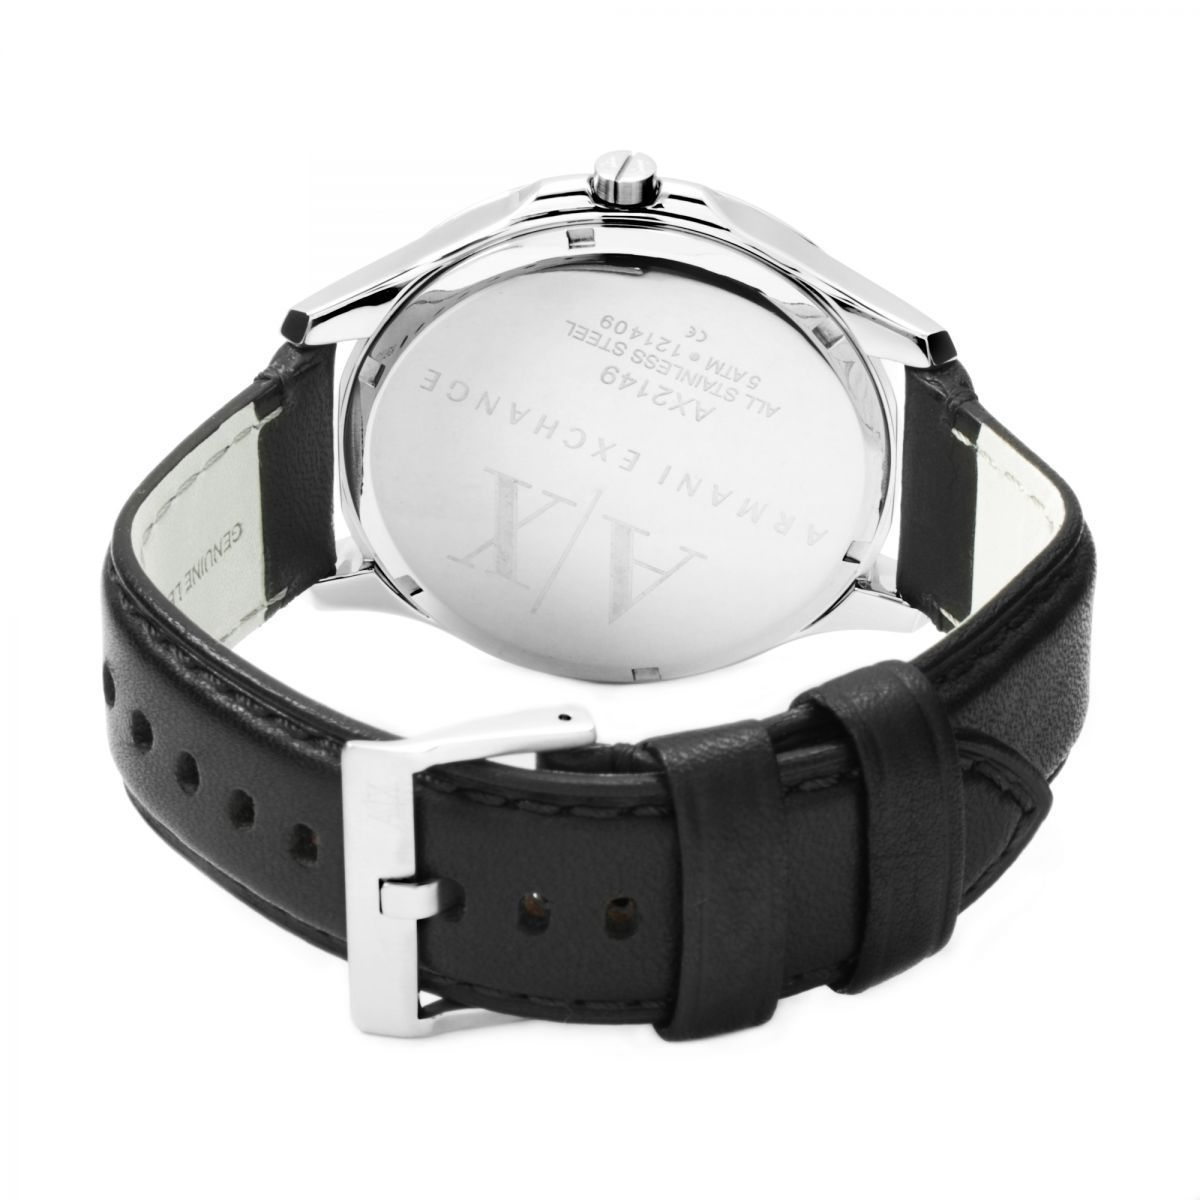 Armani Exchange Men's Stainless Steel Black Leather Strap Watch AX2149